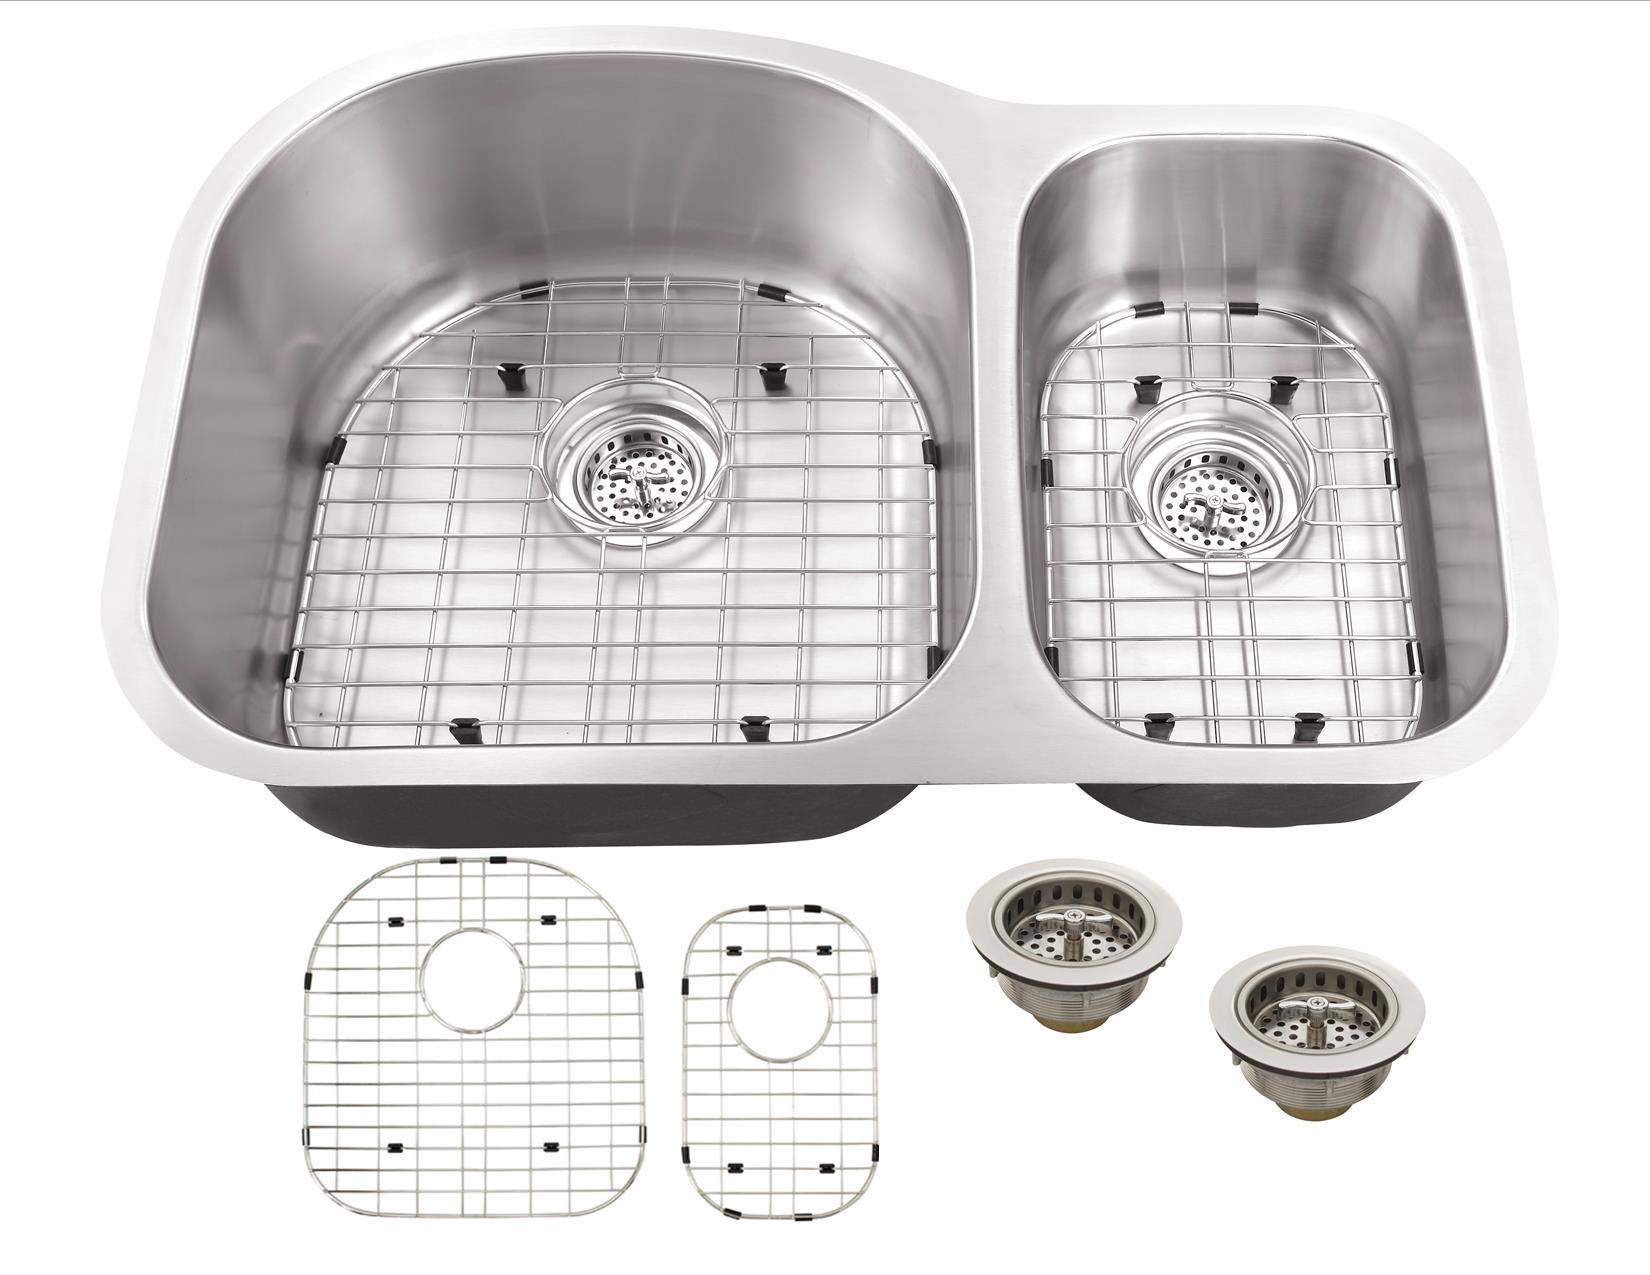 Cahaba CA122432 18 Gauge Double Bowl Kitchen Sink With Grid Sets and Drain